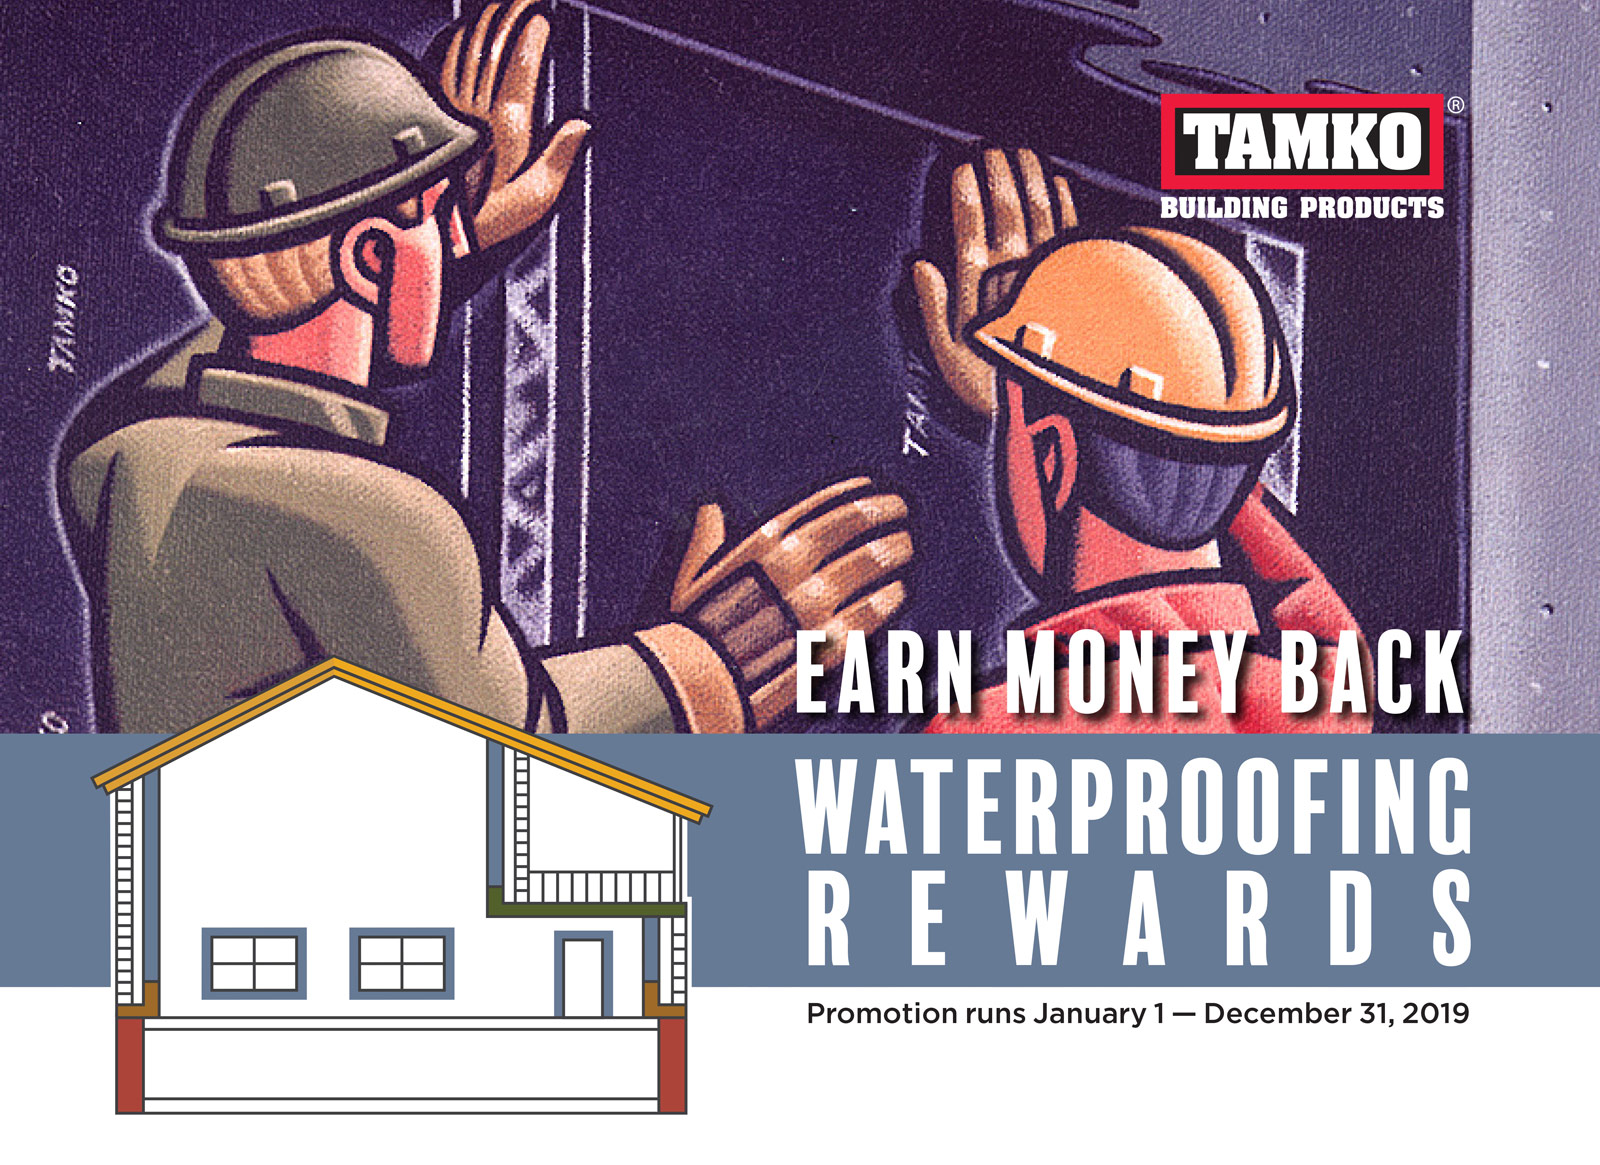 TAMKO 2019 Waterproofing Rewards